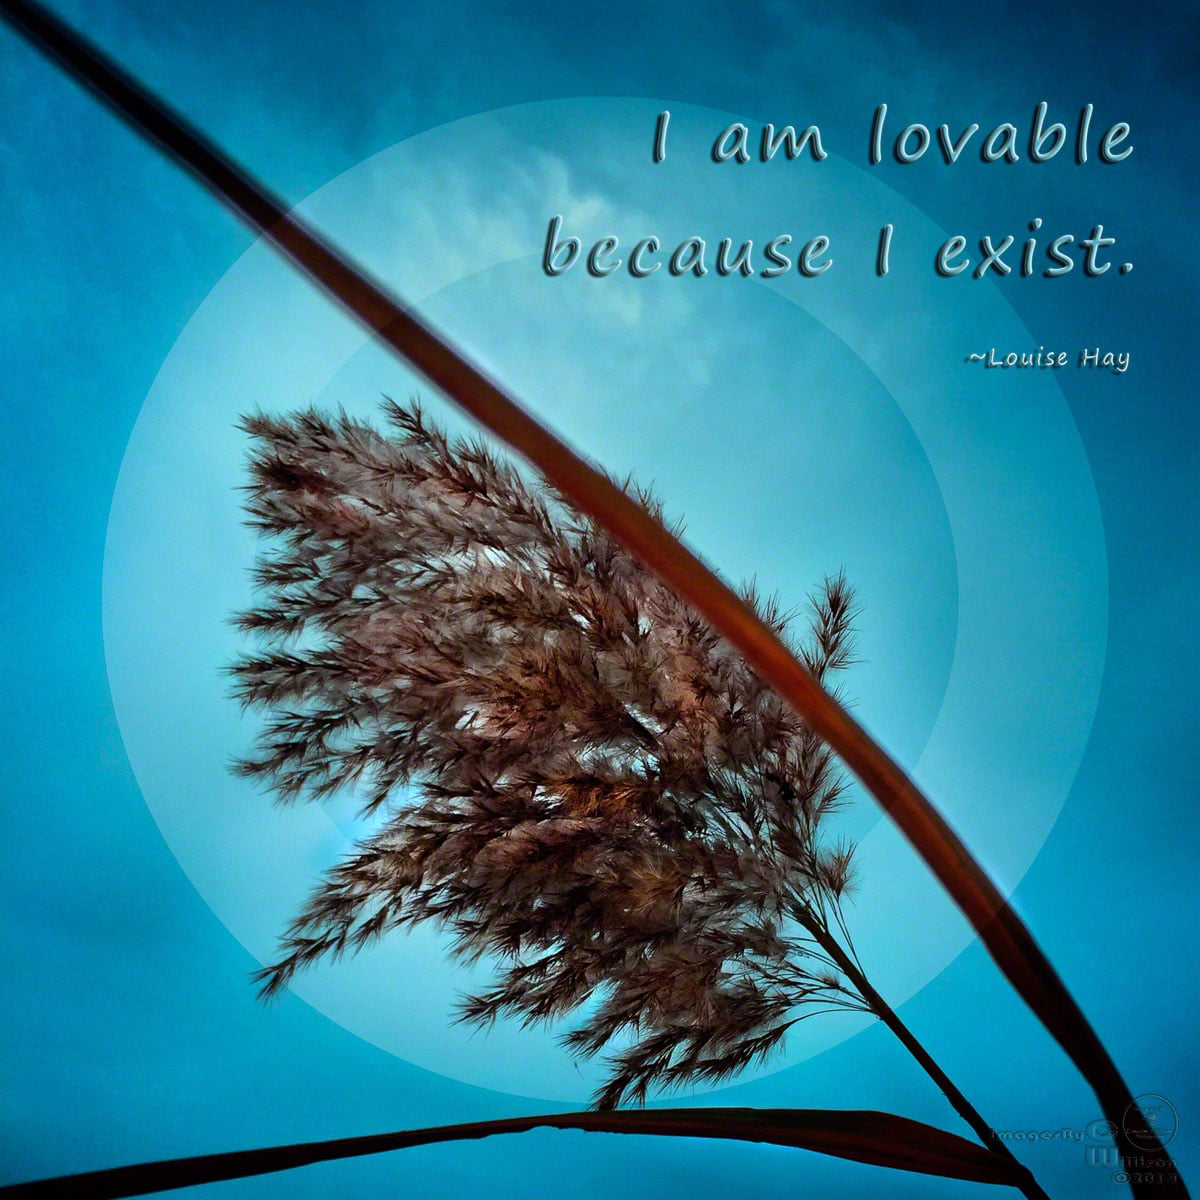 quote, louise hay, lovable